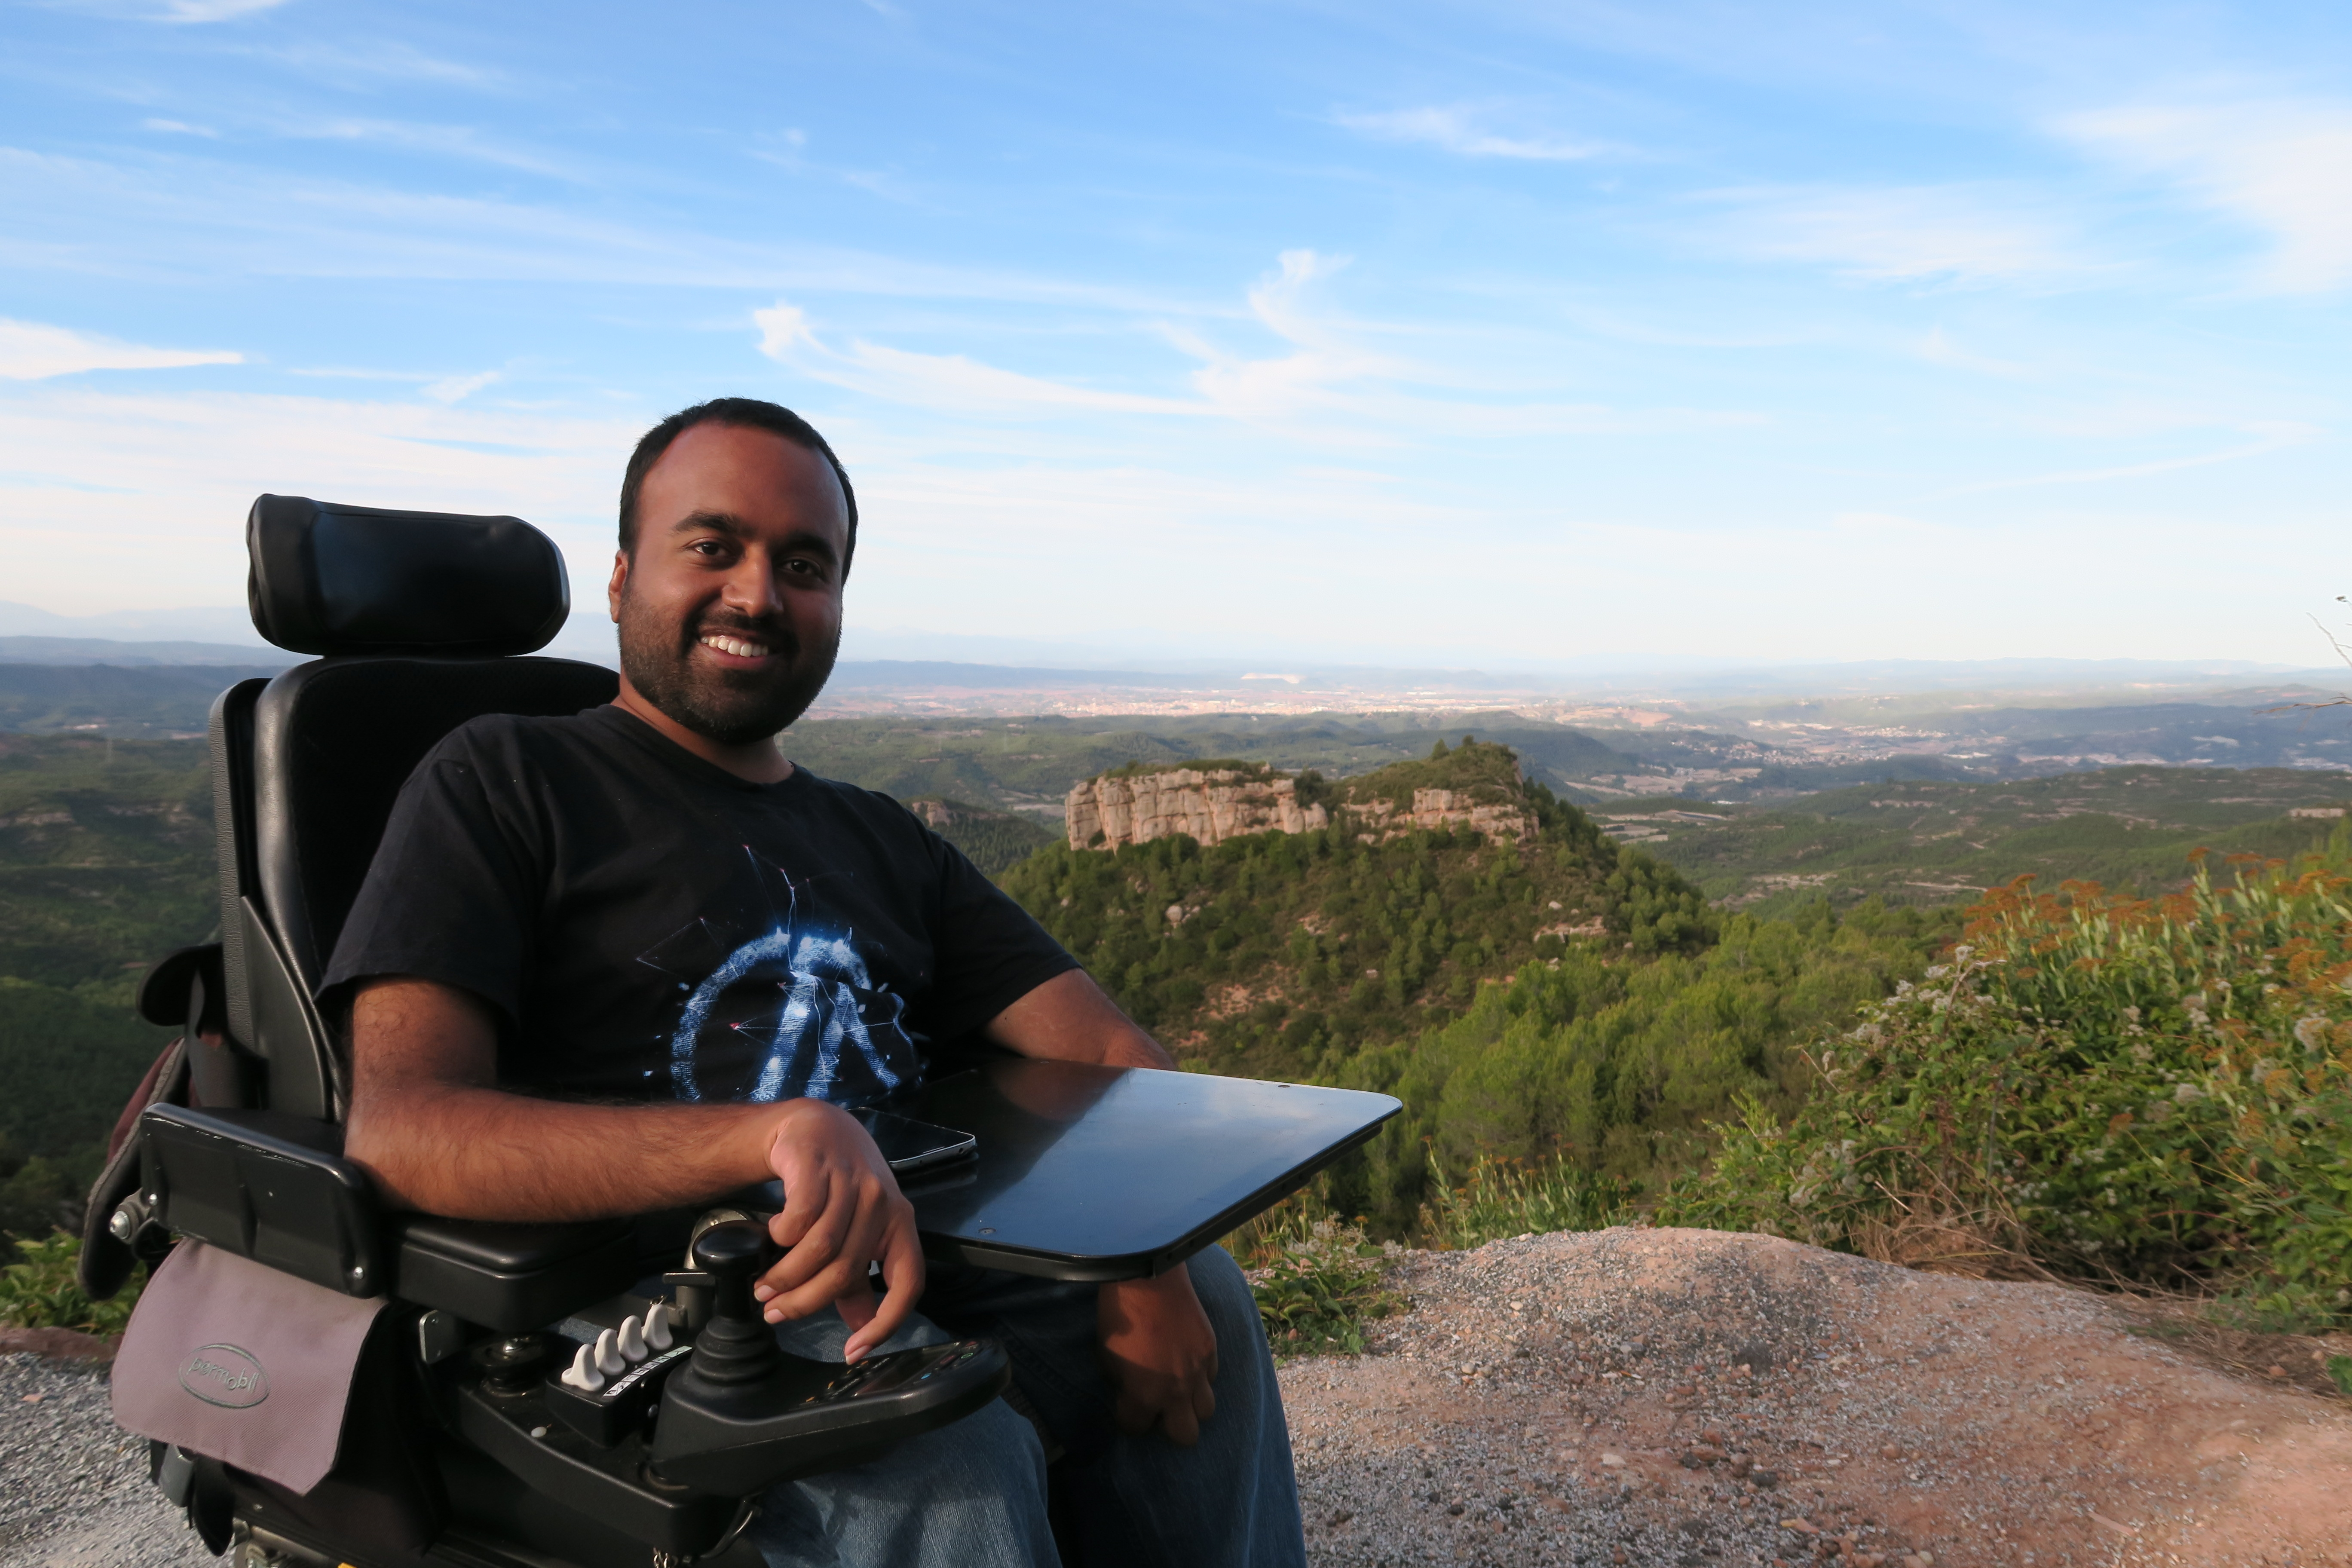 Man in wheelchair at the top of a mountain looking at the camera